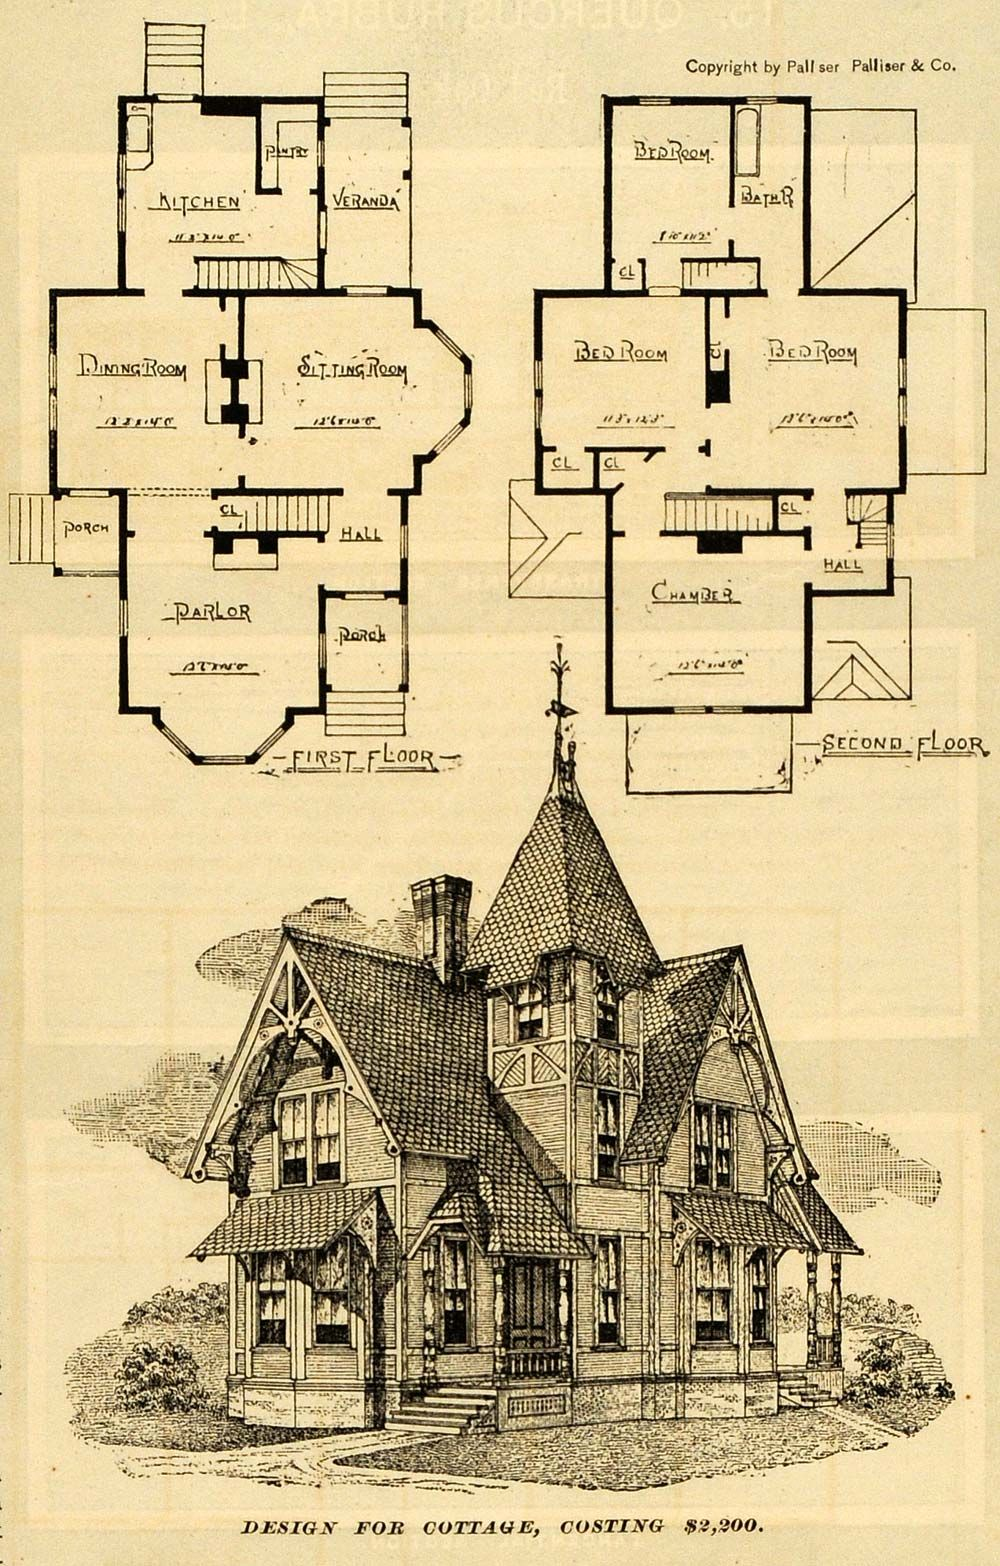 Pin By Maria Thompson On Fantasy Houses Cottage House Designs Victorian House Plans Victorian Architecture